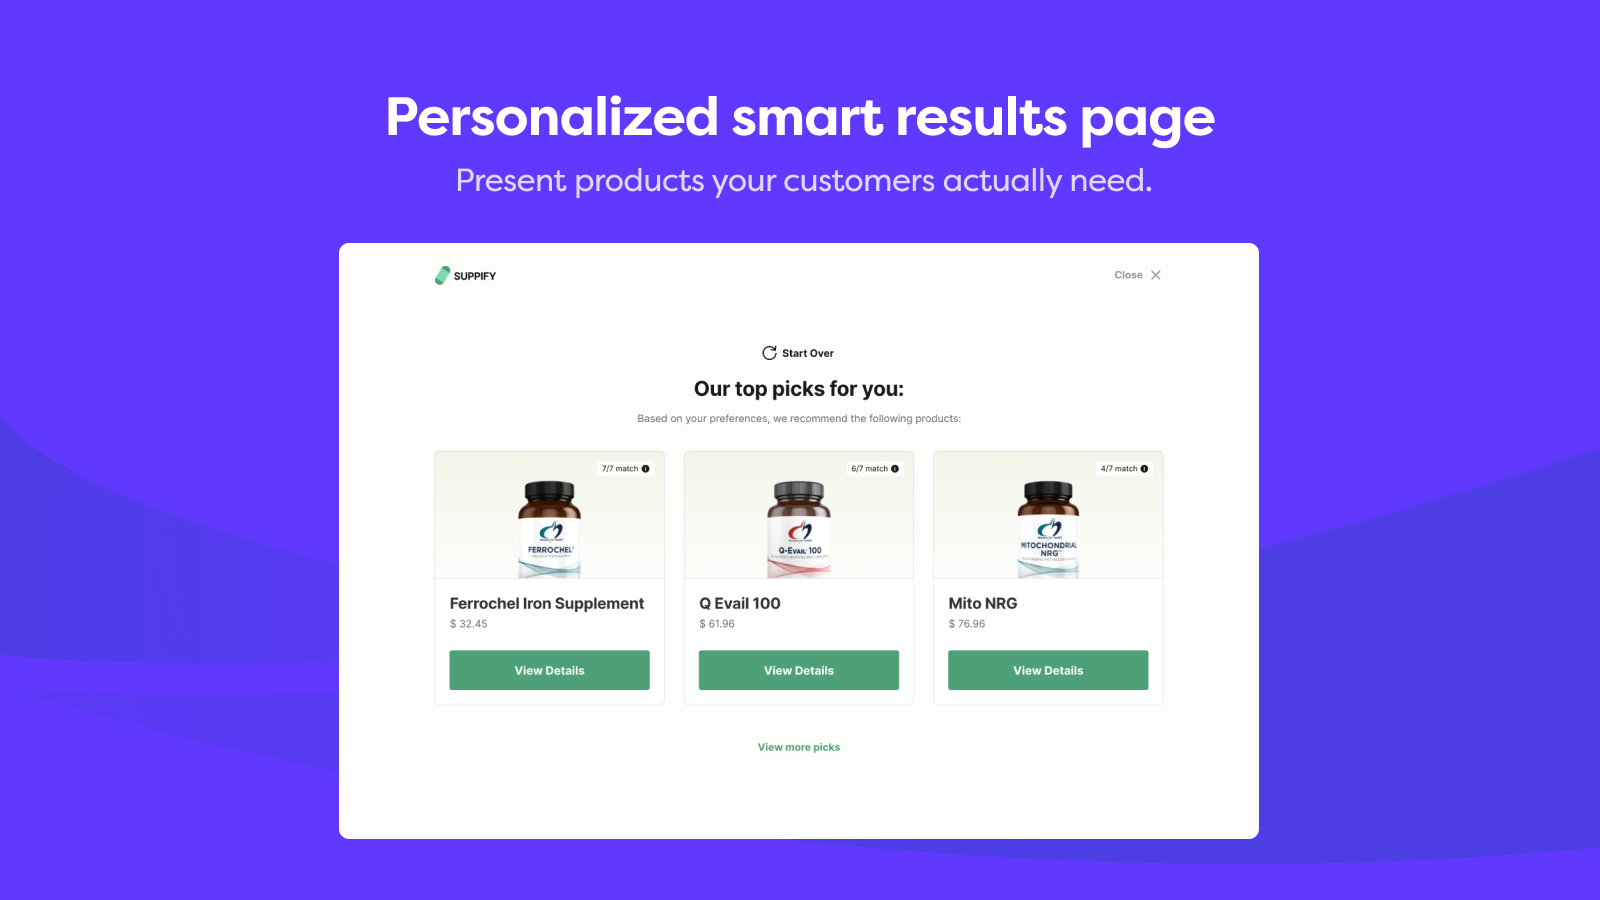 Personalized smart results page